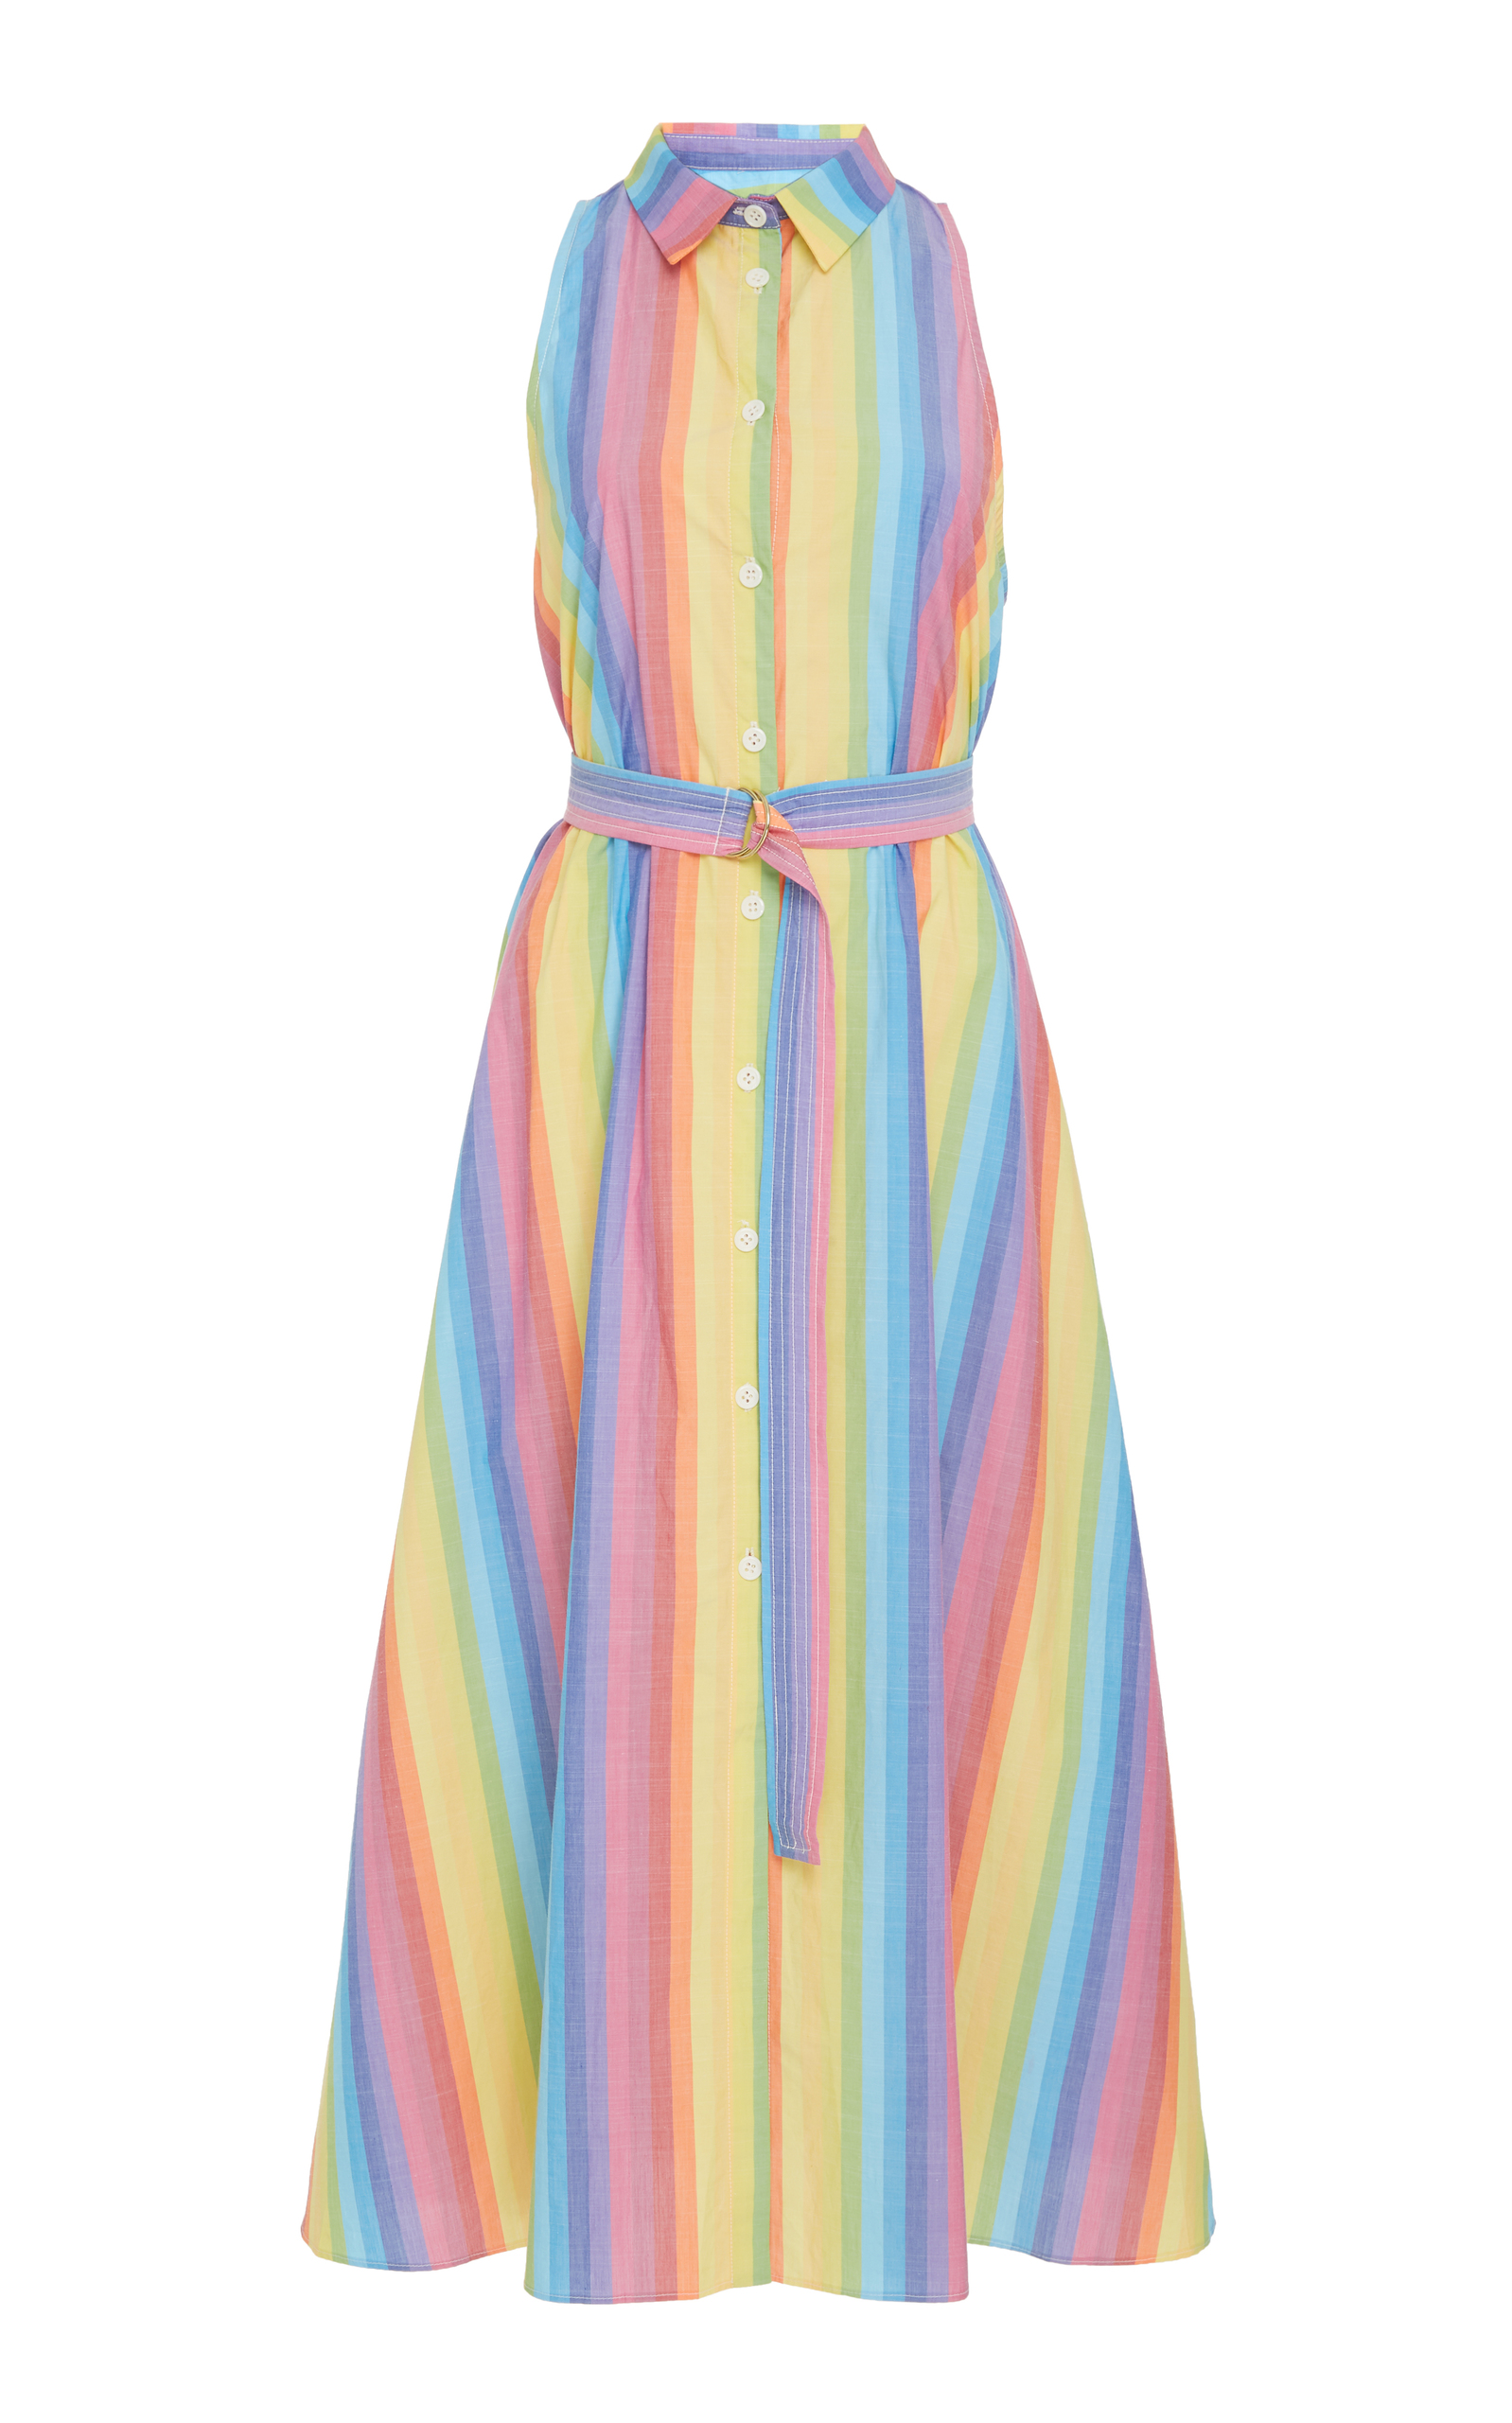 0d03651ab2 Sleeveless Button Down Shirtdress by MDS Stripes